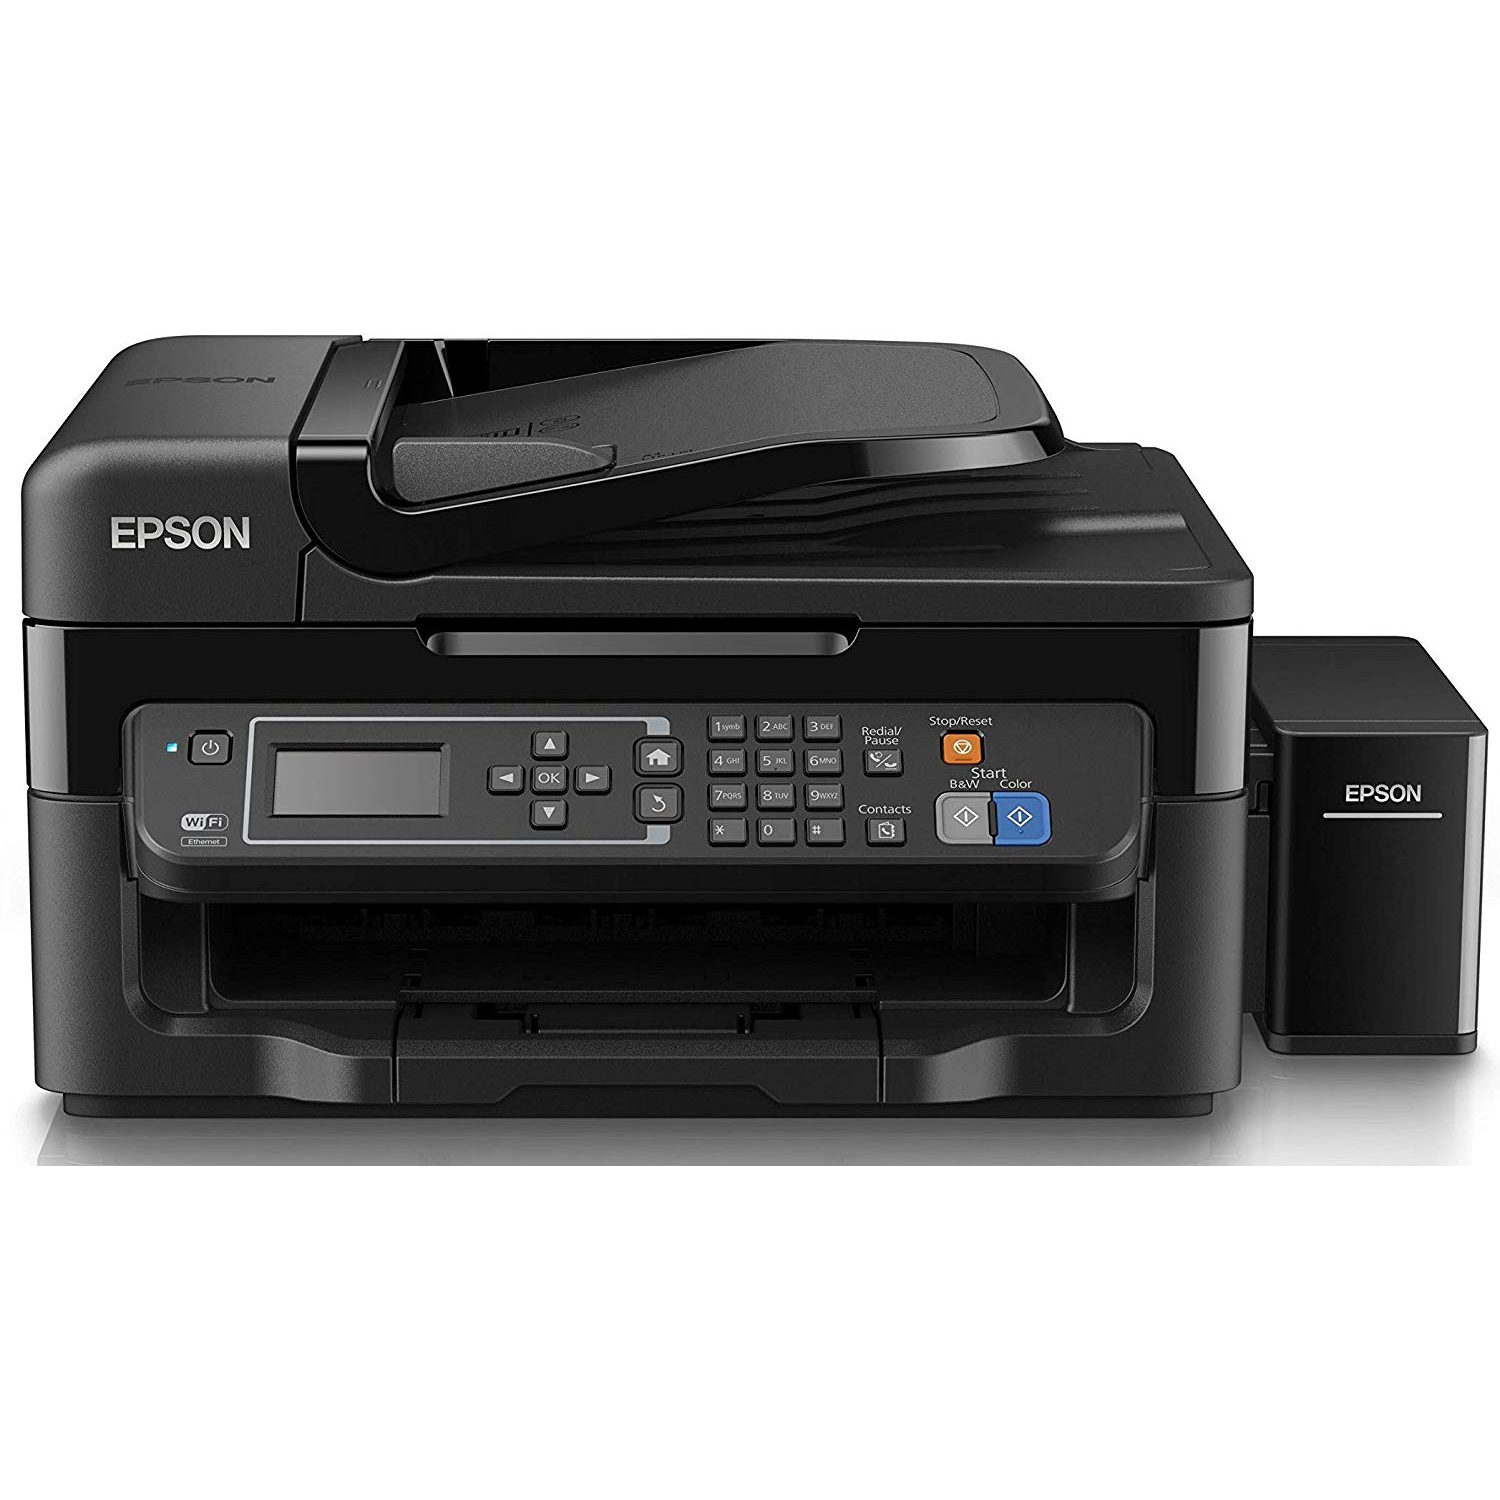 Epson EcoTank L565 Multifunction InkTank Printer